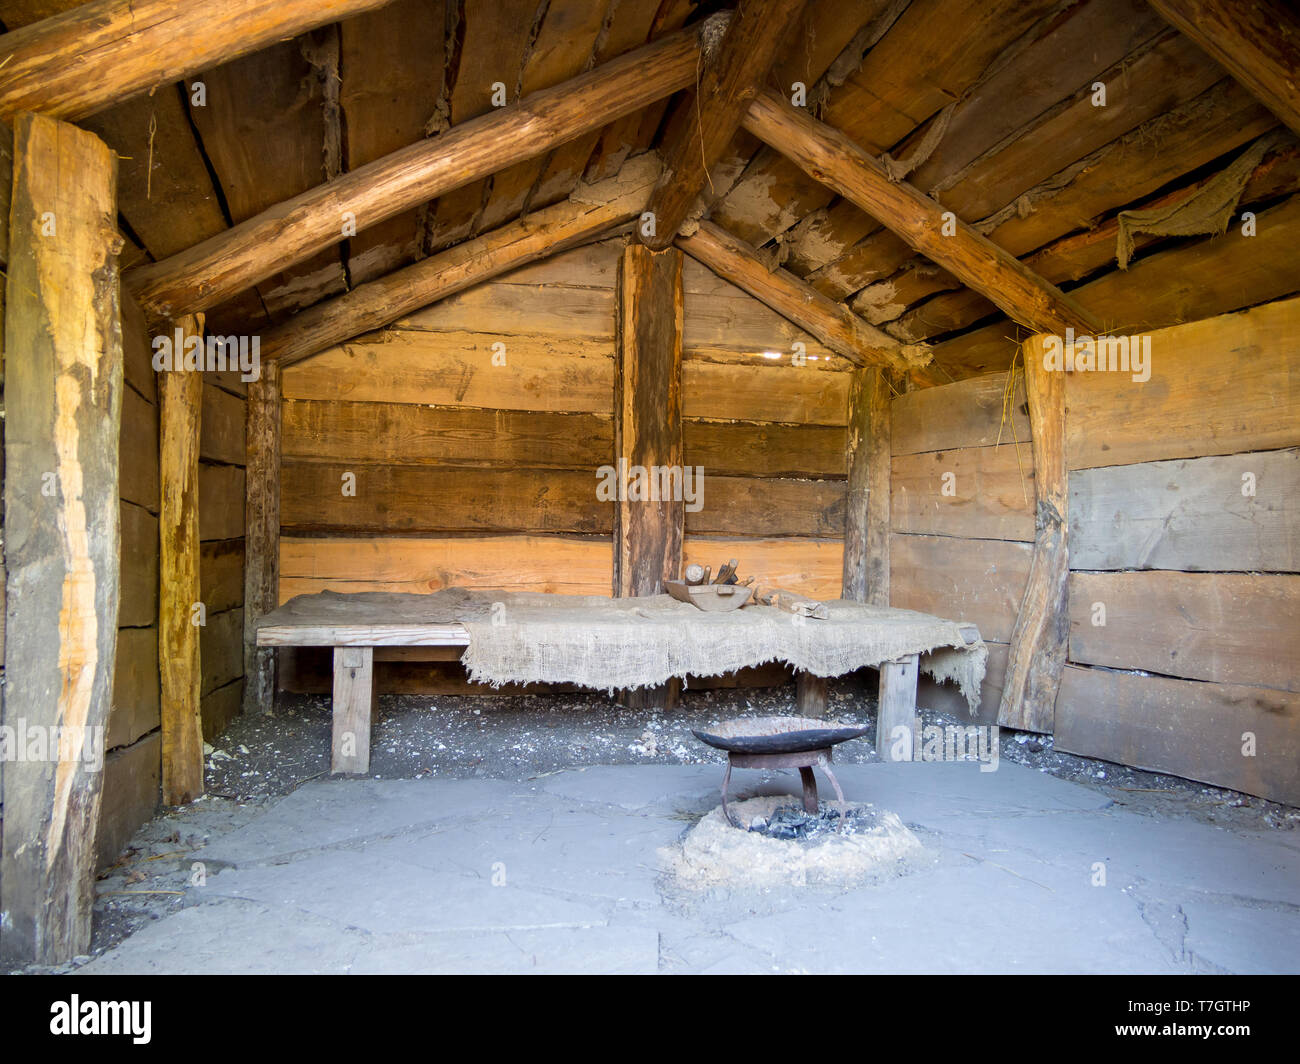 Interior of an old hut with a gable roof, archaeological park 'From nomads to cities', Divnogorye, Voronezh Region - Stock Image